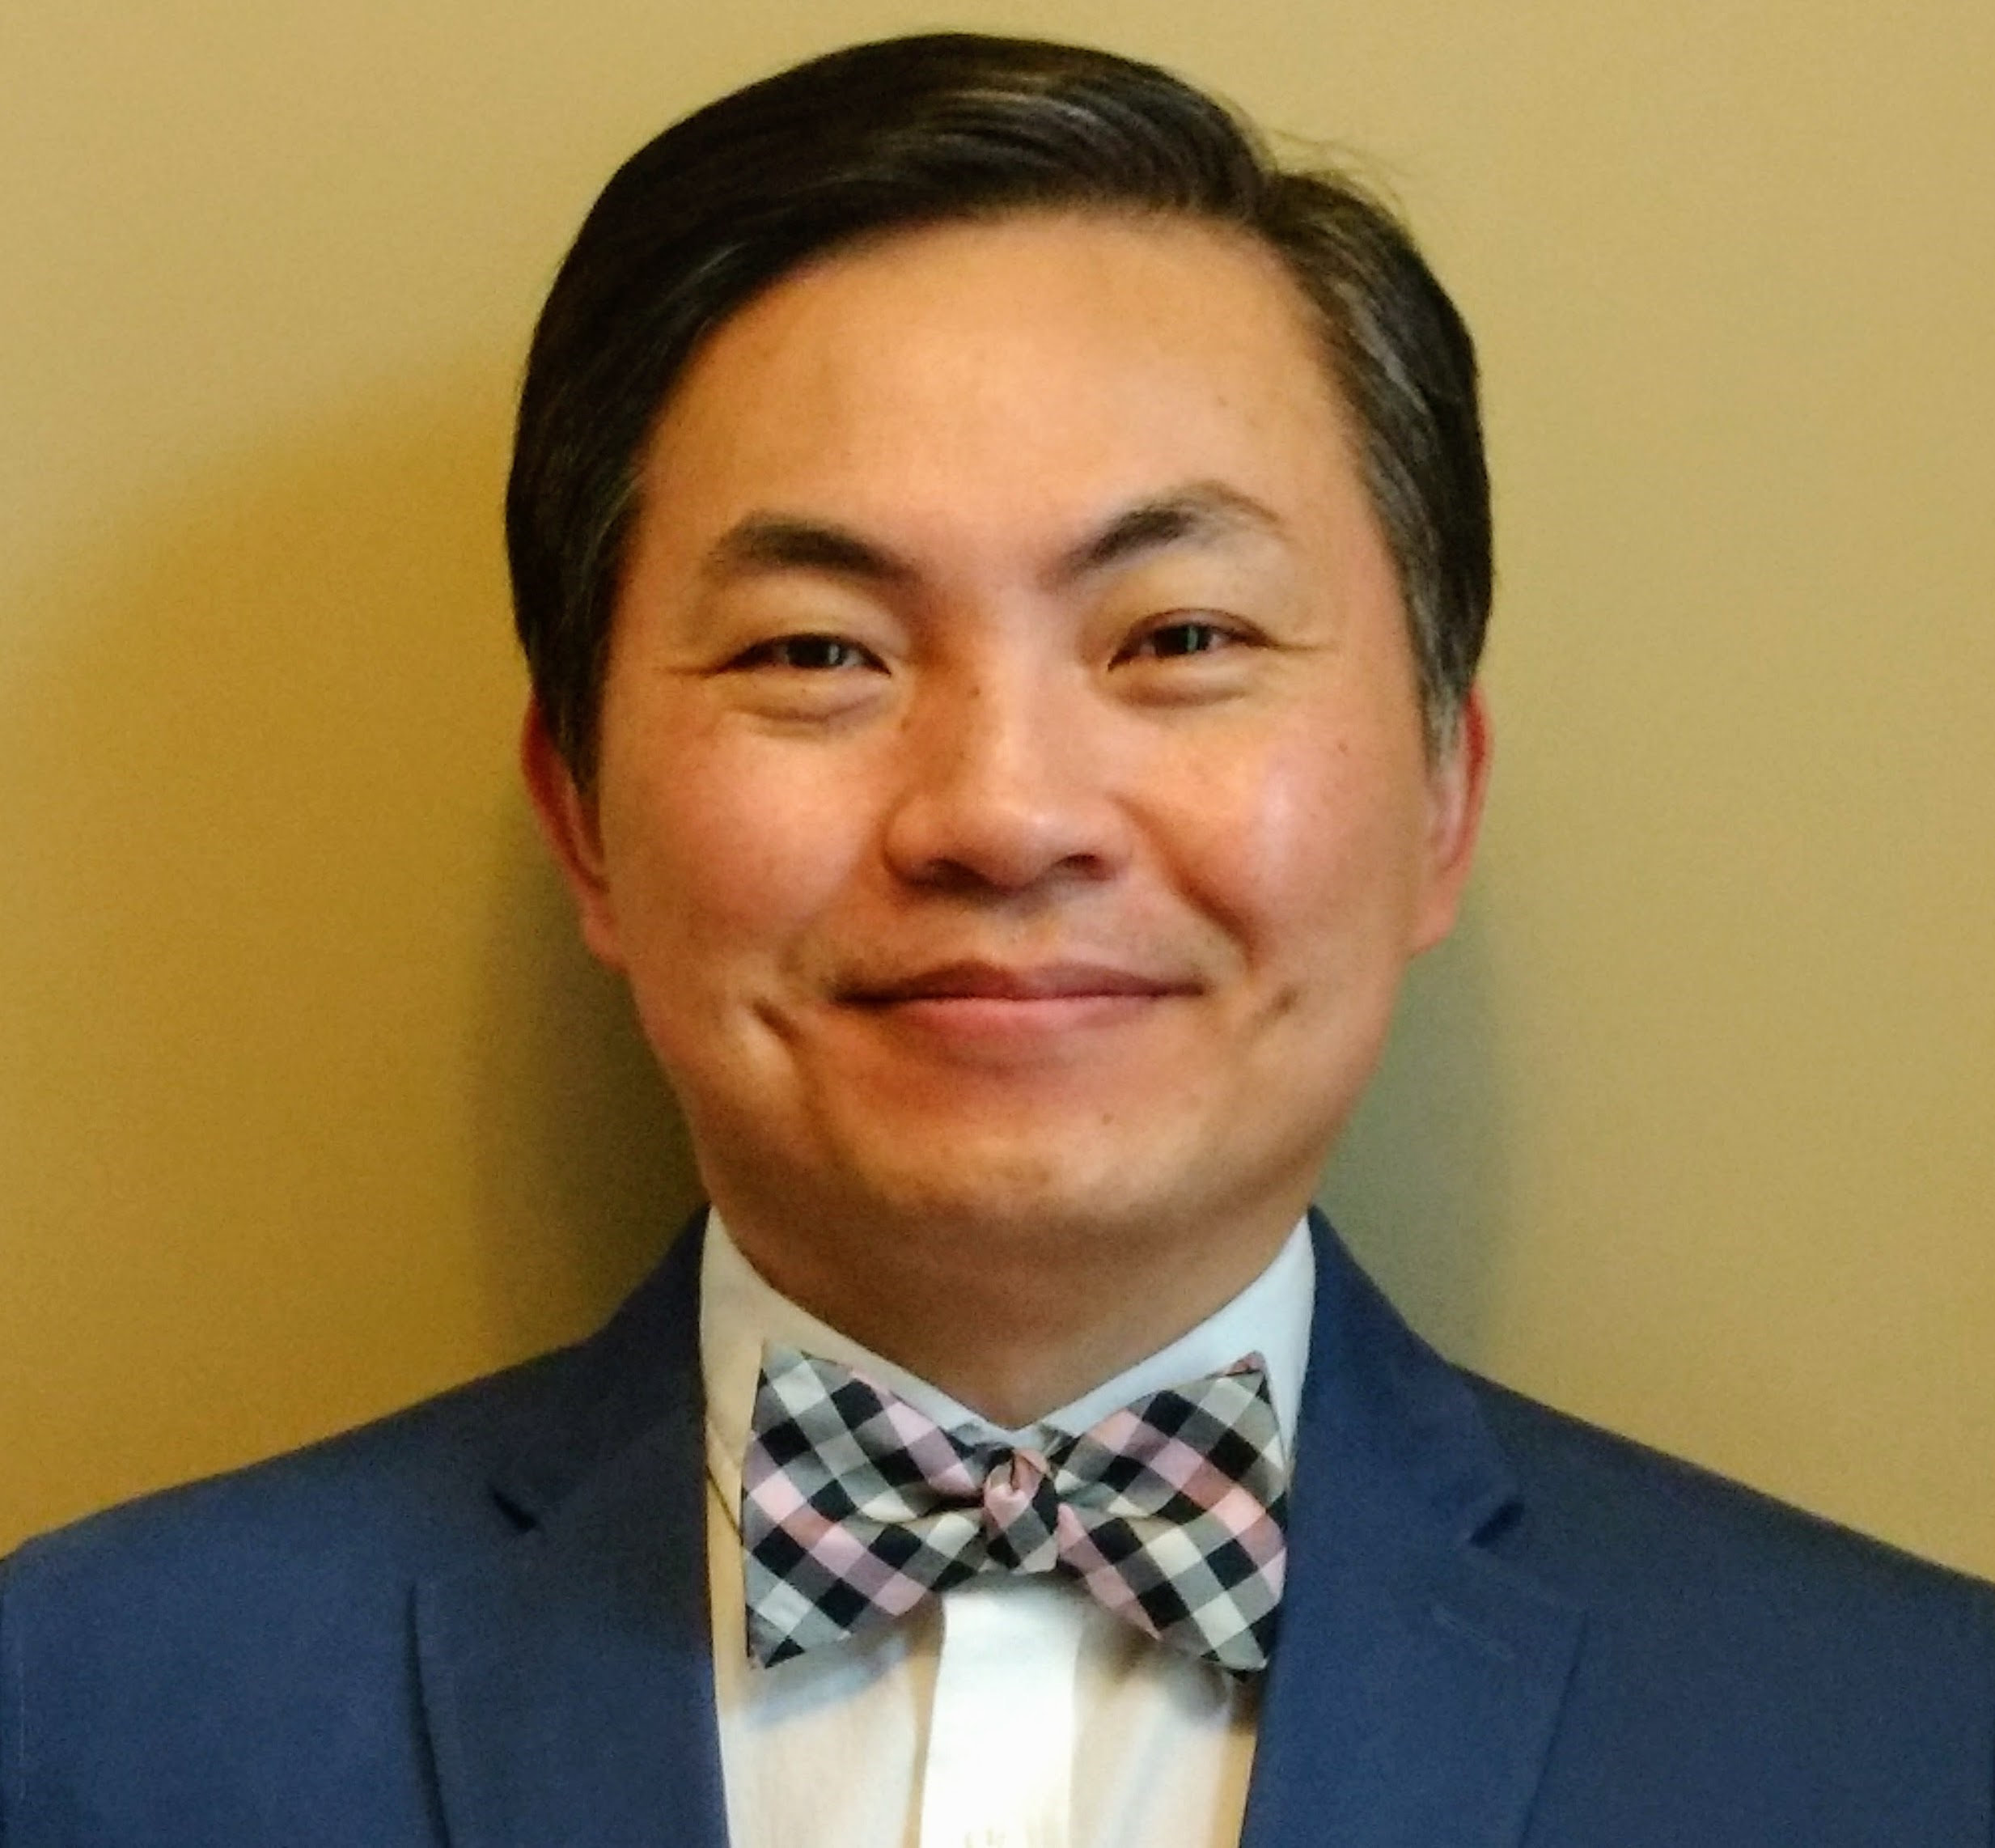 Kaleb Chang, Lay Elder  Kaleb has been married to Celina since 2010. They have one child, Jesse, and own a home in Roslindale. Kaleb is a data specialist, and he previously served as a deacon at Redeemer Presbyterian Church in New York City. Kaleb became an elder in 2017, and he now serves at City on a Hill as an elder and community group coach.